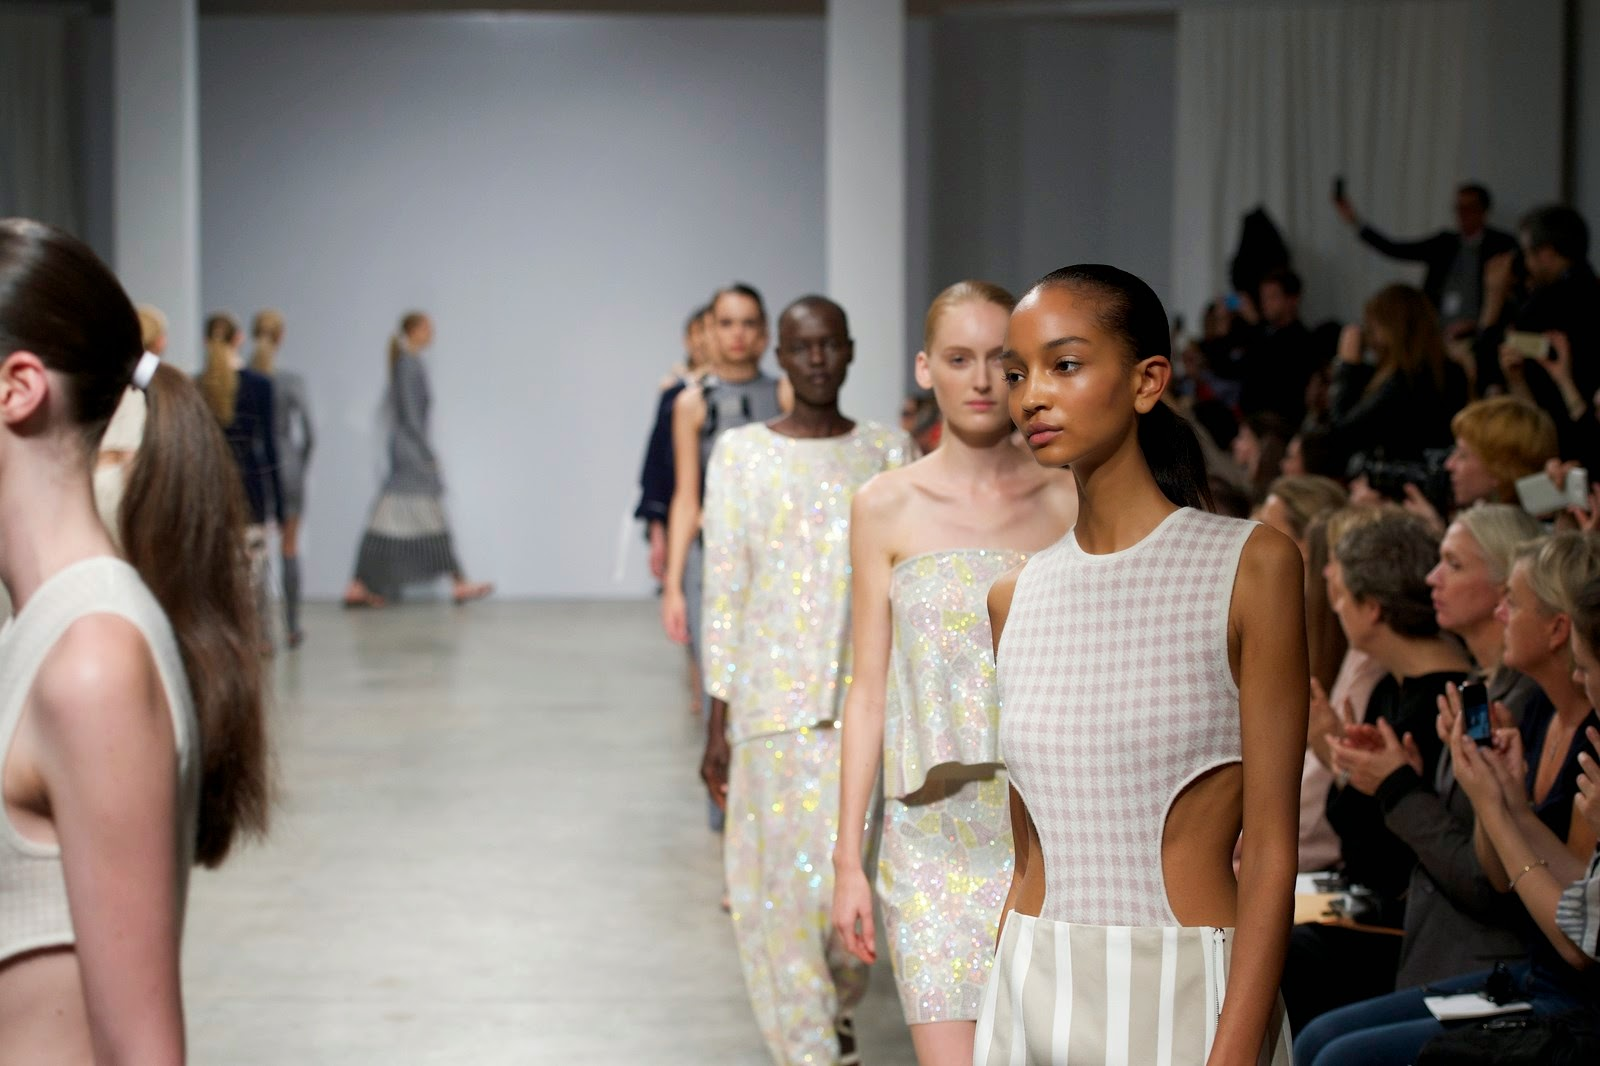 Allude spring summer 2015, Allude ss15, Allude, Allude ss15 pfw, Allude pfw, Allude cashemere, allude cachemire, andrea karg, cashemere, cachemire, pfw, pfw ss15, pfw2014, fashion week, paris fashion week, du dessin aux podiums, dudessinauxpodiums, vintage look, dress to impress, dress for less, boho, unique vintage, alloy clothing, venus clothing, la moda, spring trends, tendance, tendance de mode, blog de mode, fashion blog,  blog mode, mode paris, paris mode, fashion news, designer, fashion designer, moda in pelle, ross dress for less, fashion magazines, fashion blogs, mode a toi, revista de moda, vintage, vintage definition, vintage retro, top fashion, suits online, blog de moda, blog moda, ropa, asos dresses, blogs de moda, dresses, tunique femme, vetements femmes, fashion tops, womens fashions, vetement tendance, fashion dresses, ladies clothes, robes de soiree, robe bustier, robe sexy, sexy dress